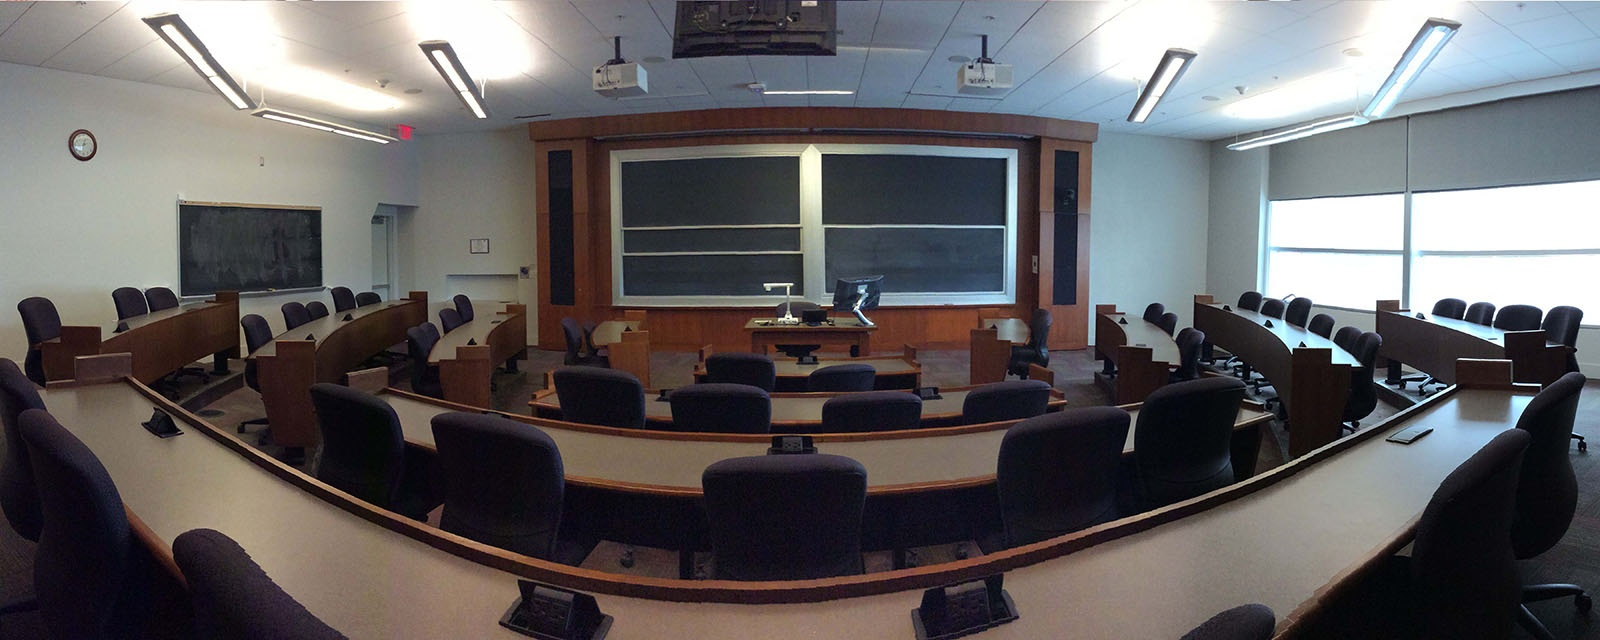 Panorama of SOM 101 from rear of room, stadium seating, moveable chairs, teaching station in front center